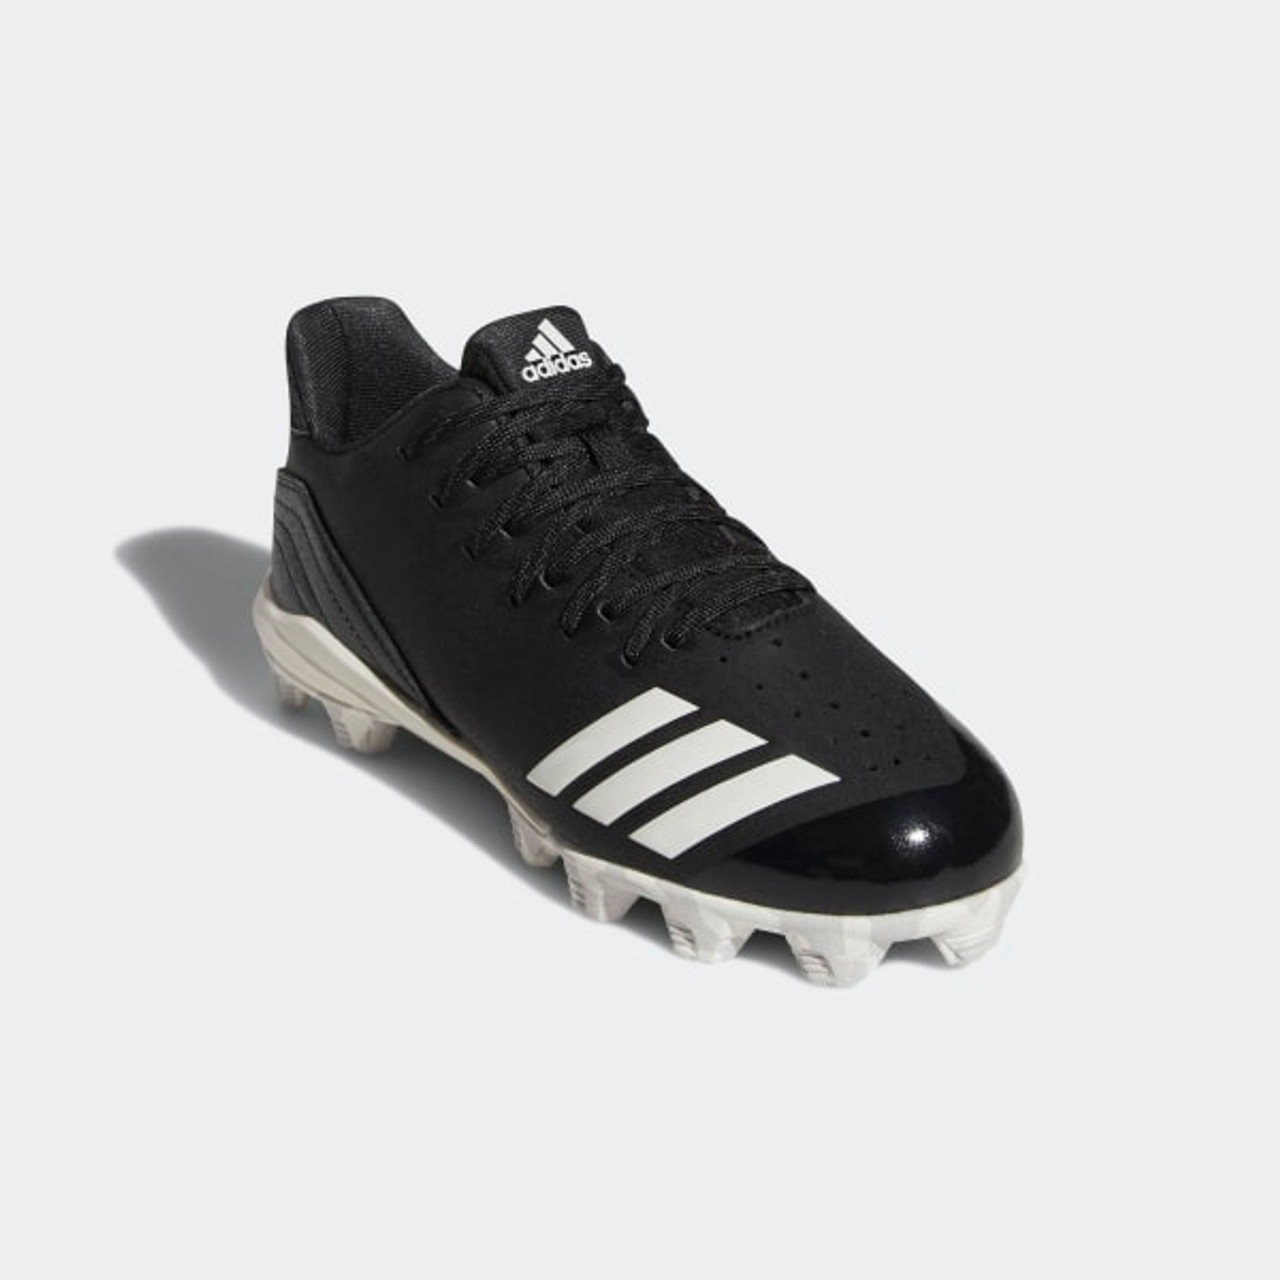 scrutinare sistema cultura  Adidas Icon 4 MD K Cleats - Grogan Marciano Sporting Goods